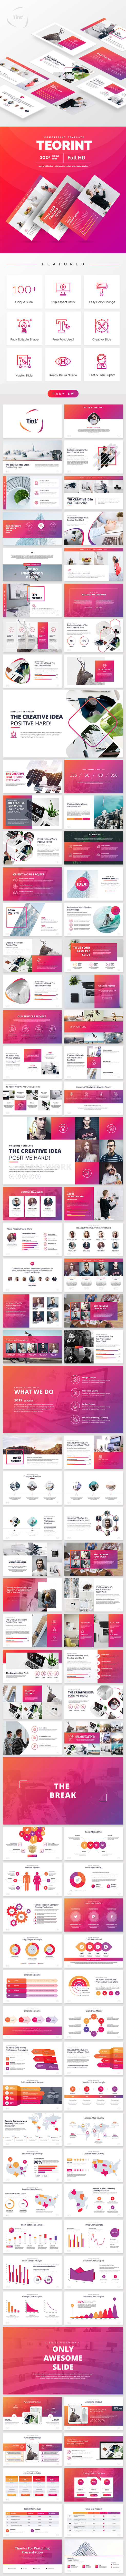 GraphicRiver Teorint Powerpoint Template 20934178